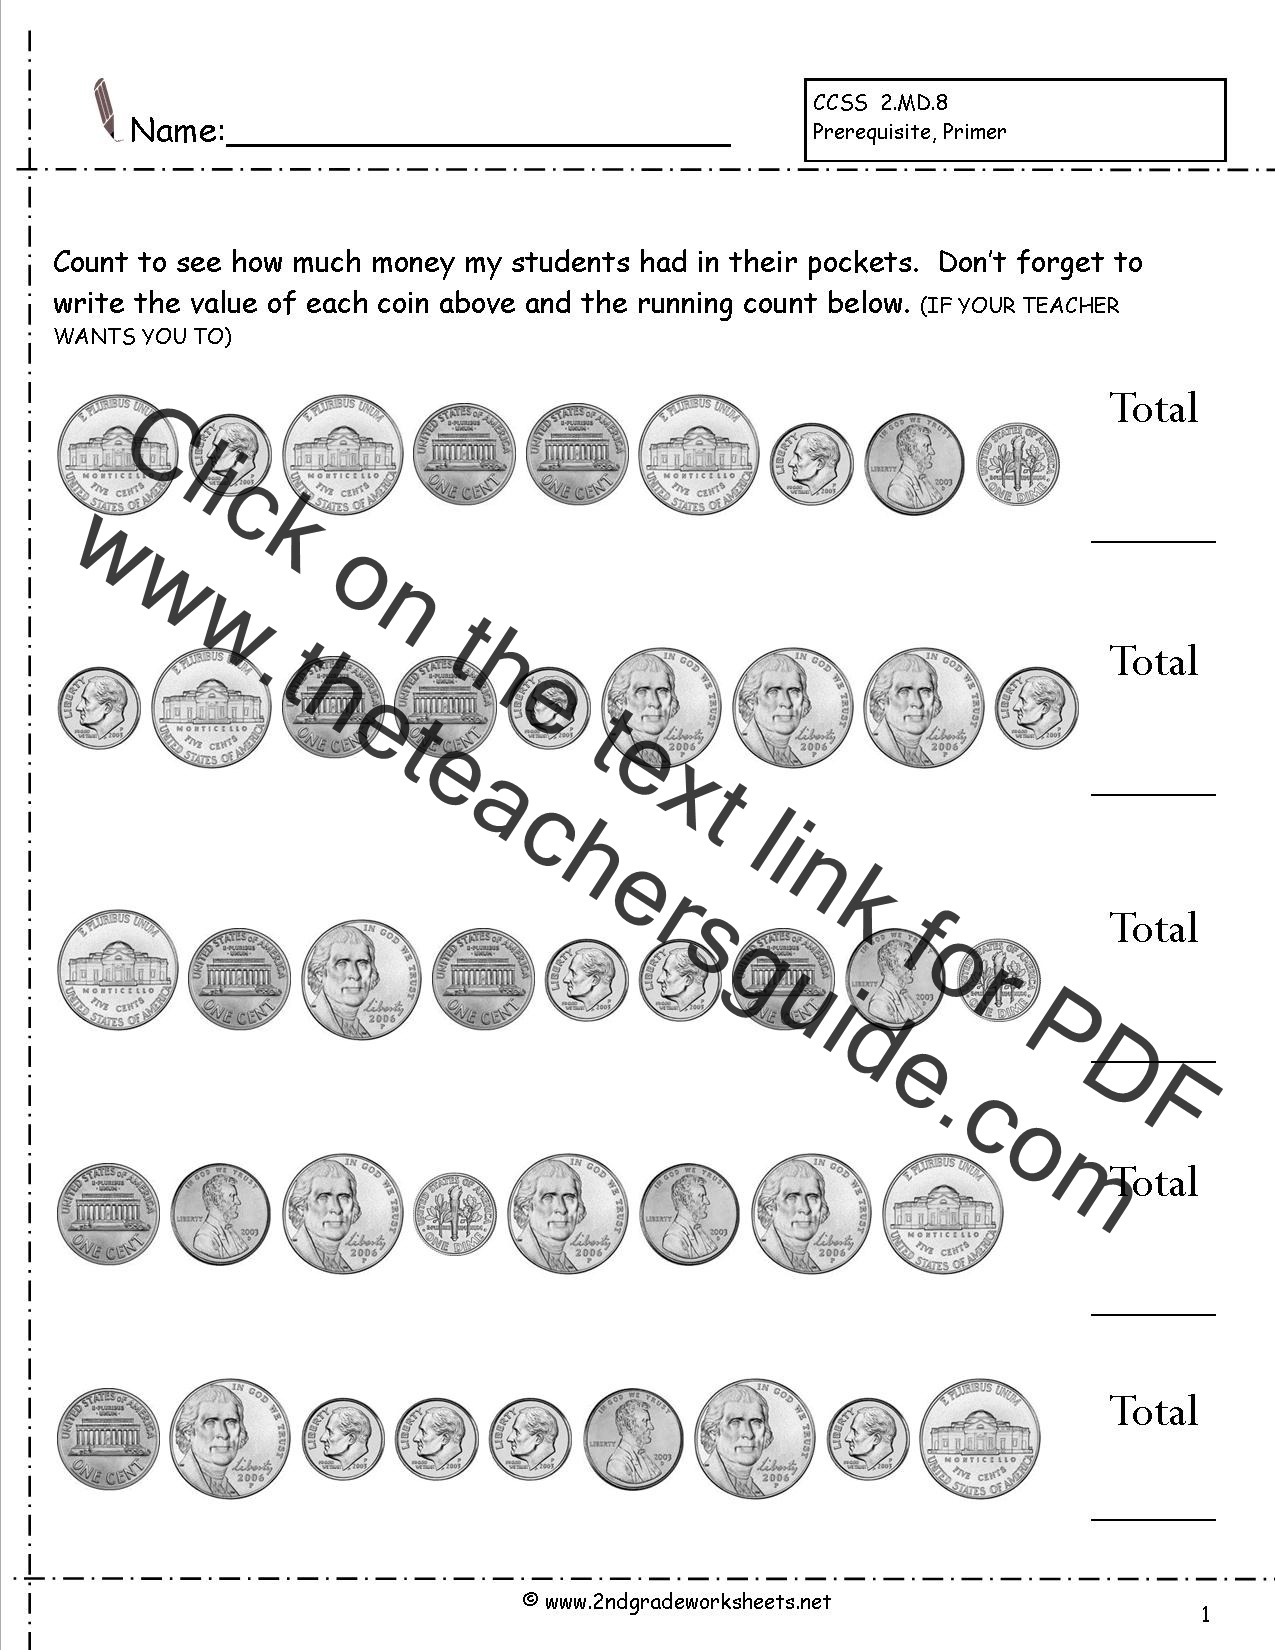 Worksheets Counting Coins Worksheet counting coins and money worksheets printouts worksheet